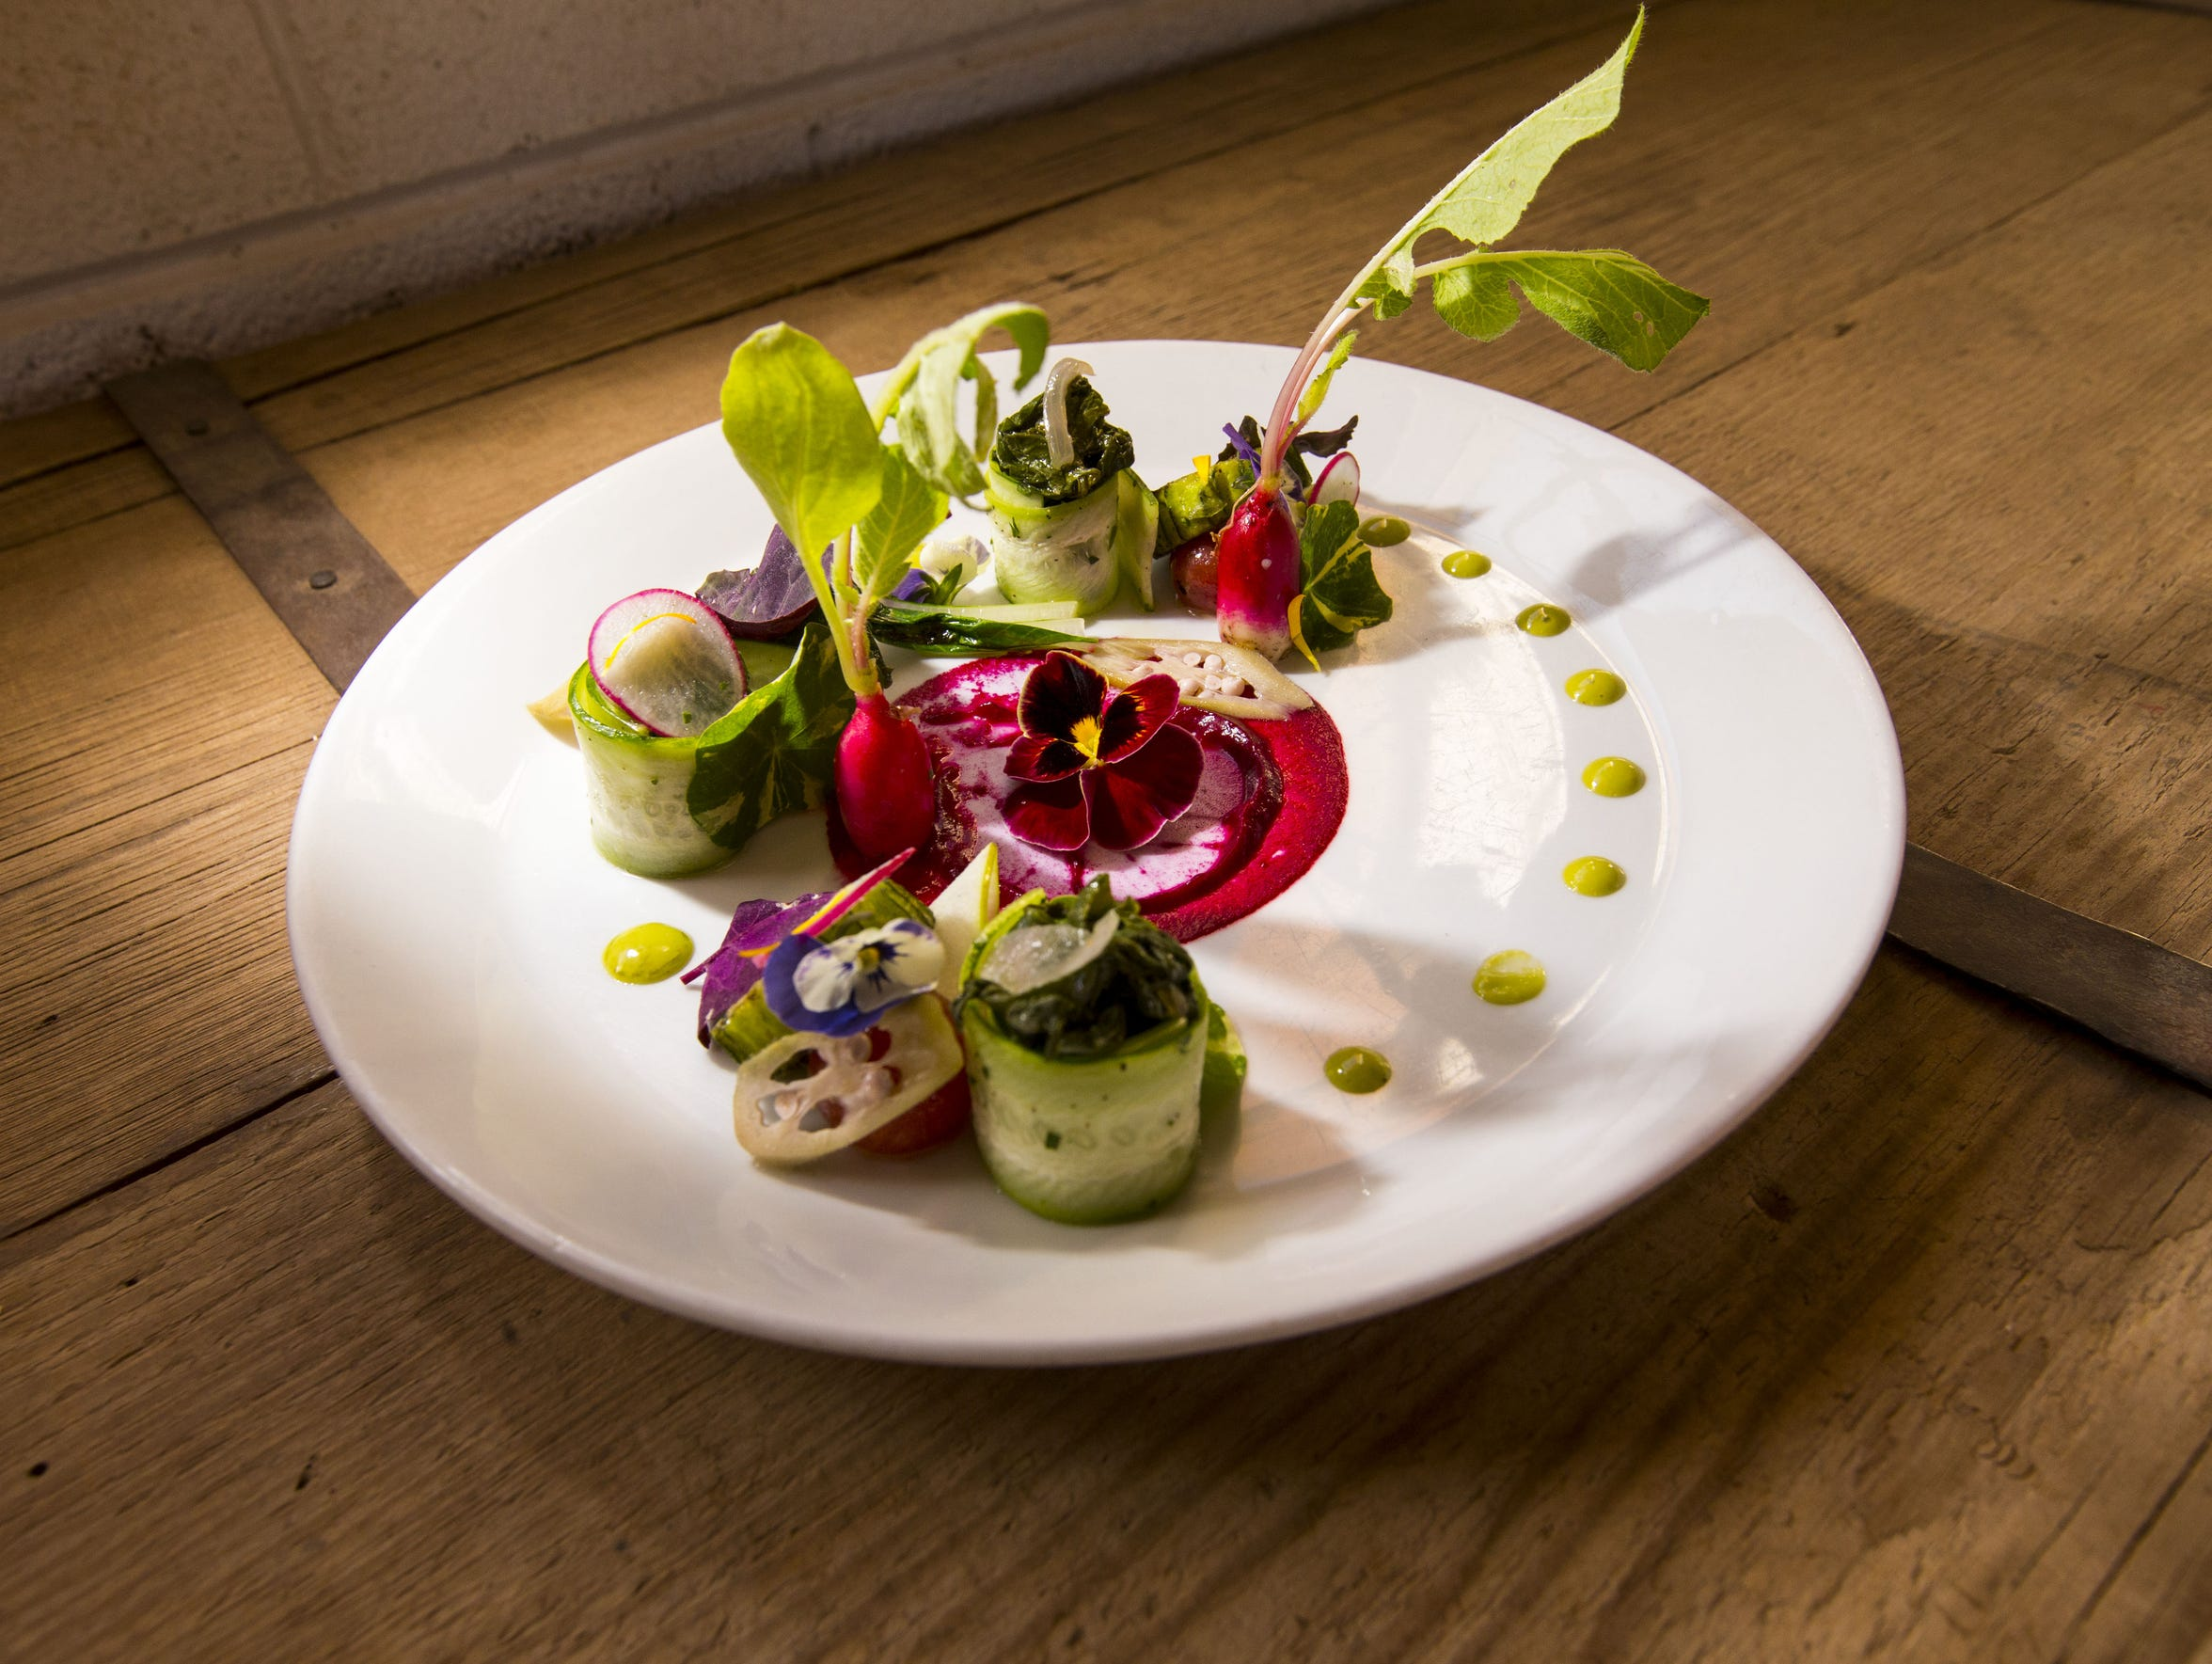 Executive Chef Dustin Christofolo's salad, Farmers Foraged, at Quiessence at The Farm at South Mountain in Phoenix.